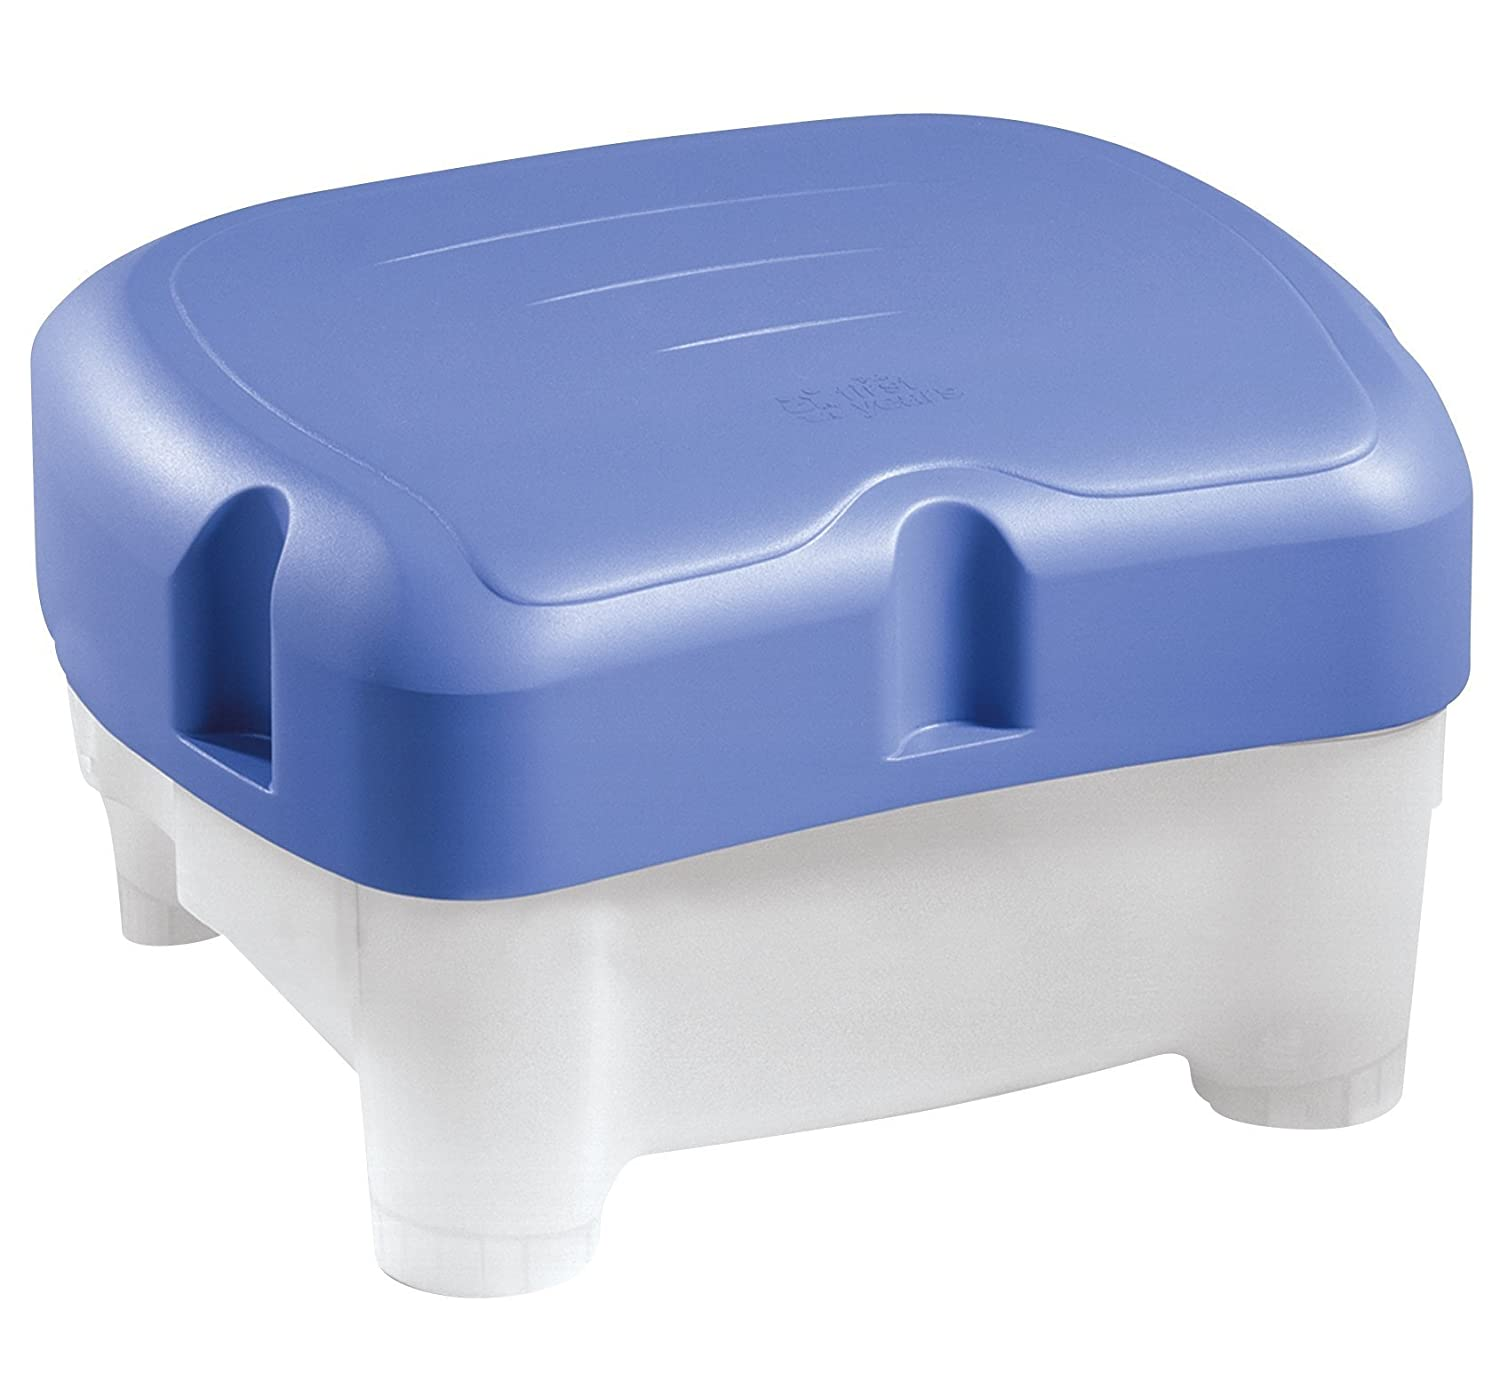 Amazon.com: The First Years Sit and Store Parent Bathing Seat and ...